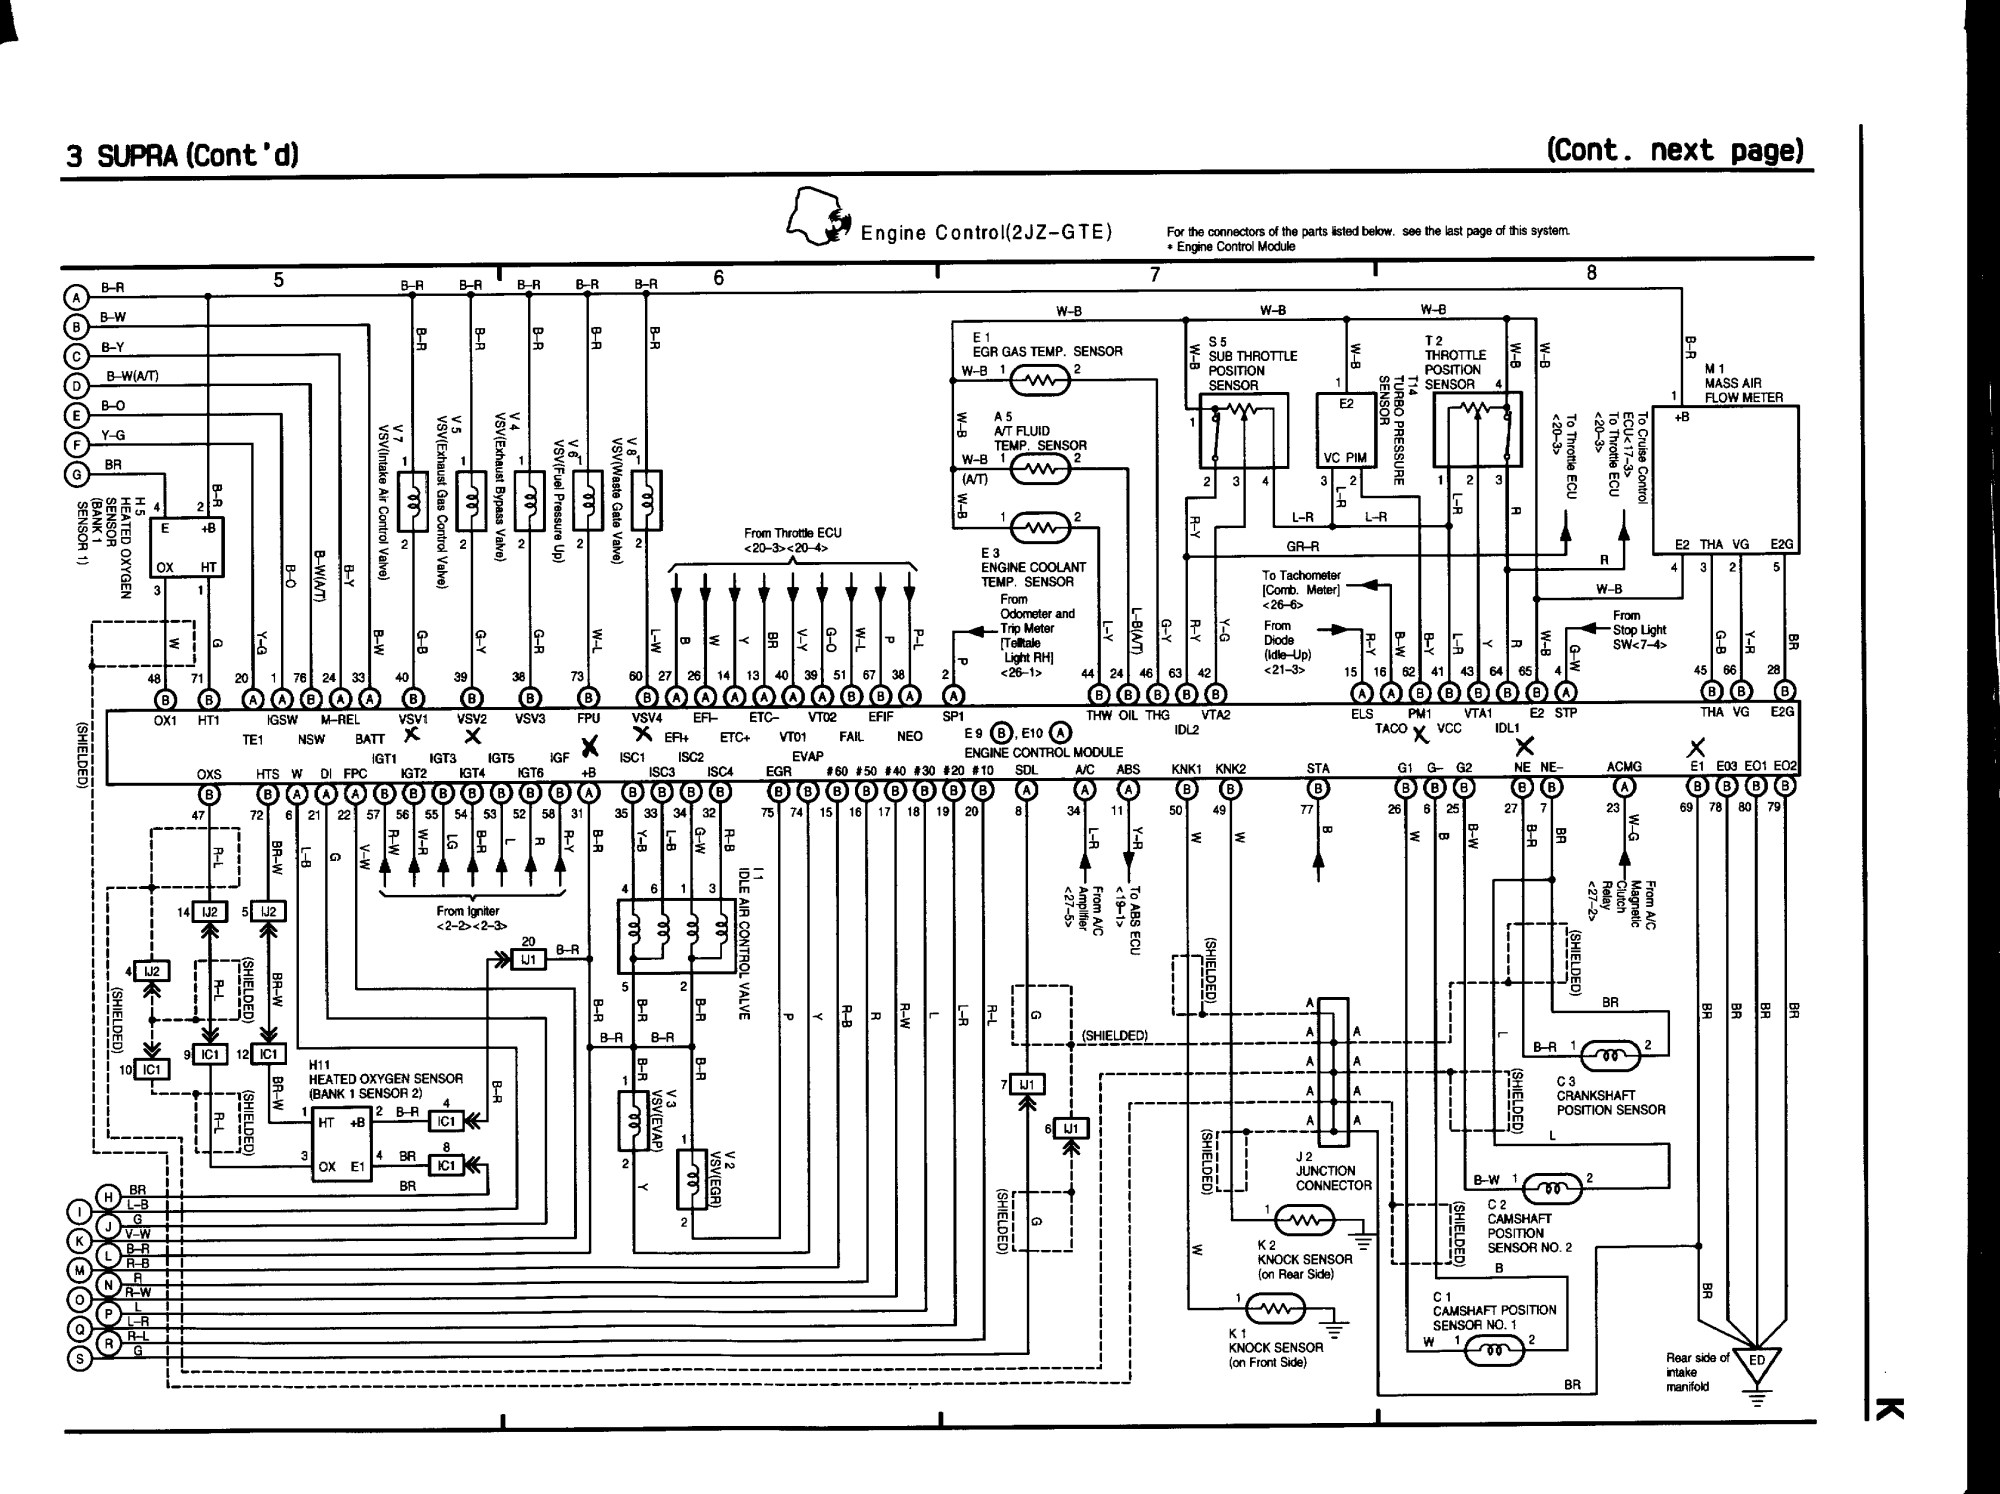 hight resolution of 2jz gte ecu index of tech stuff toyota vip rs3000 wiring diagram at cita asia